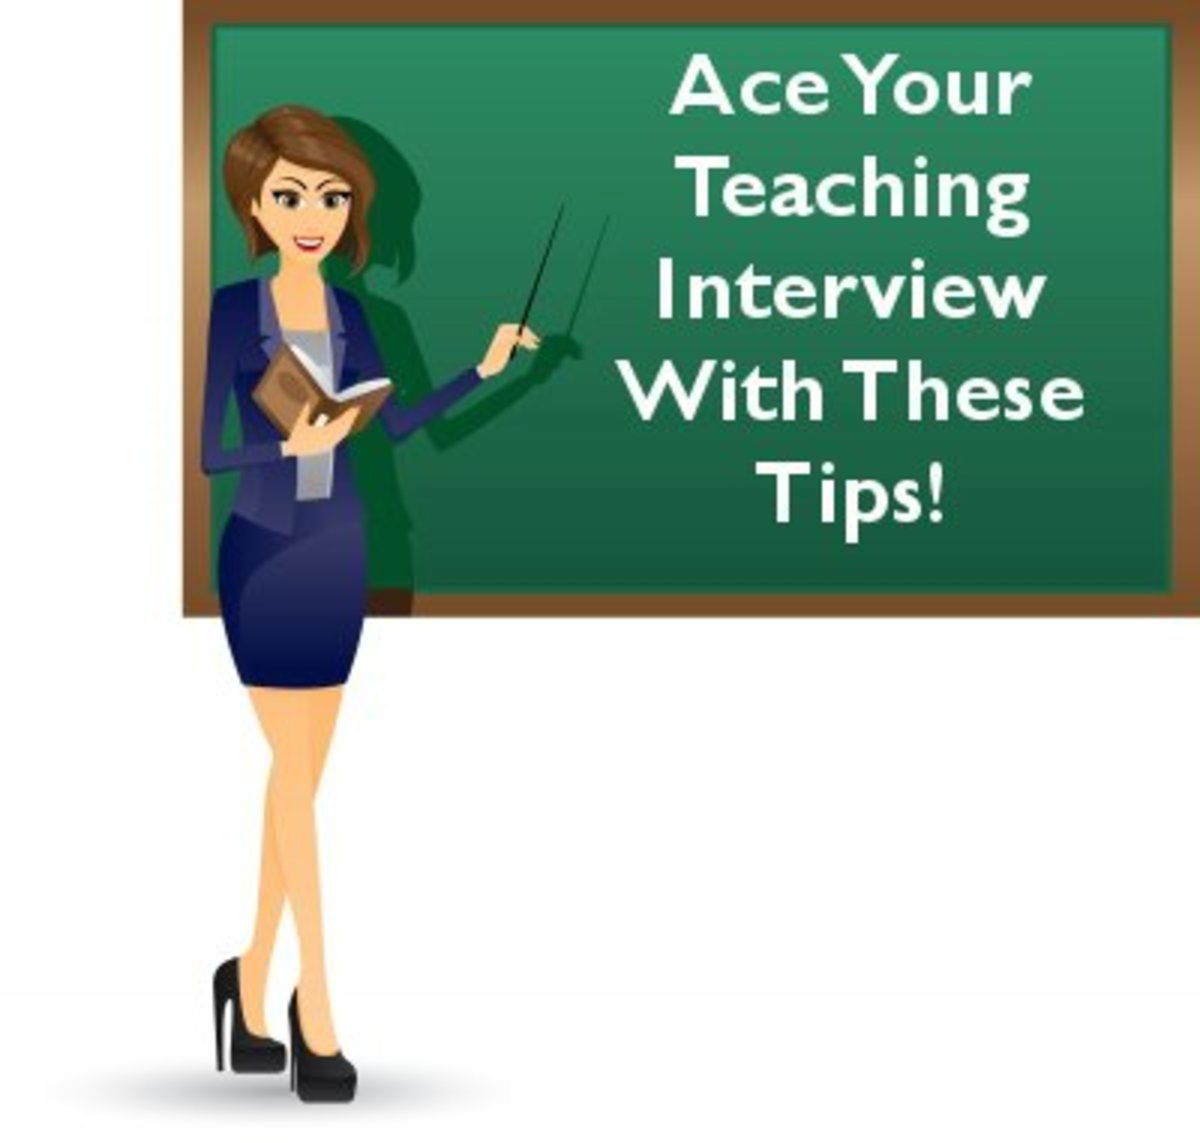 Prepare for a Teaching Interview – Land That Teaching Job!